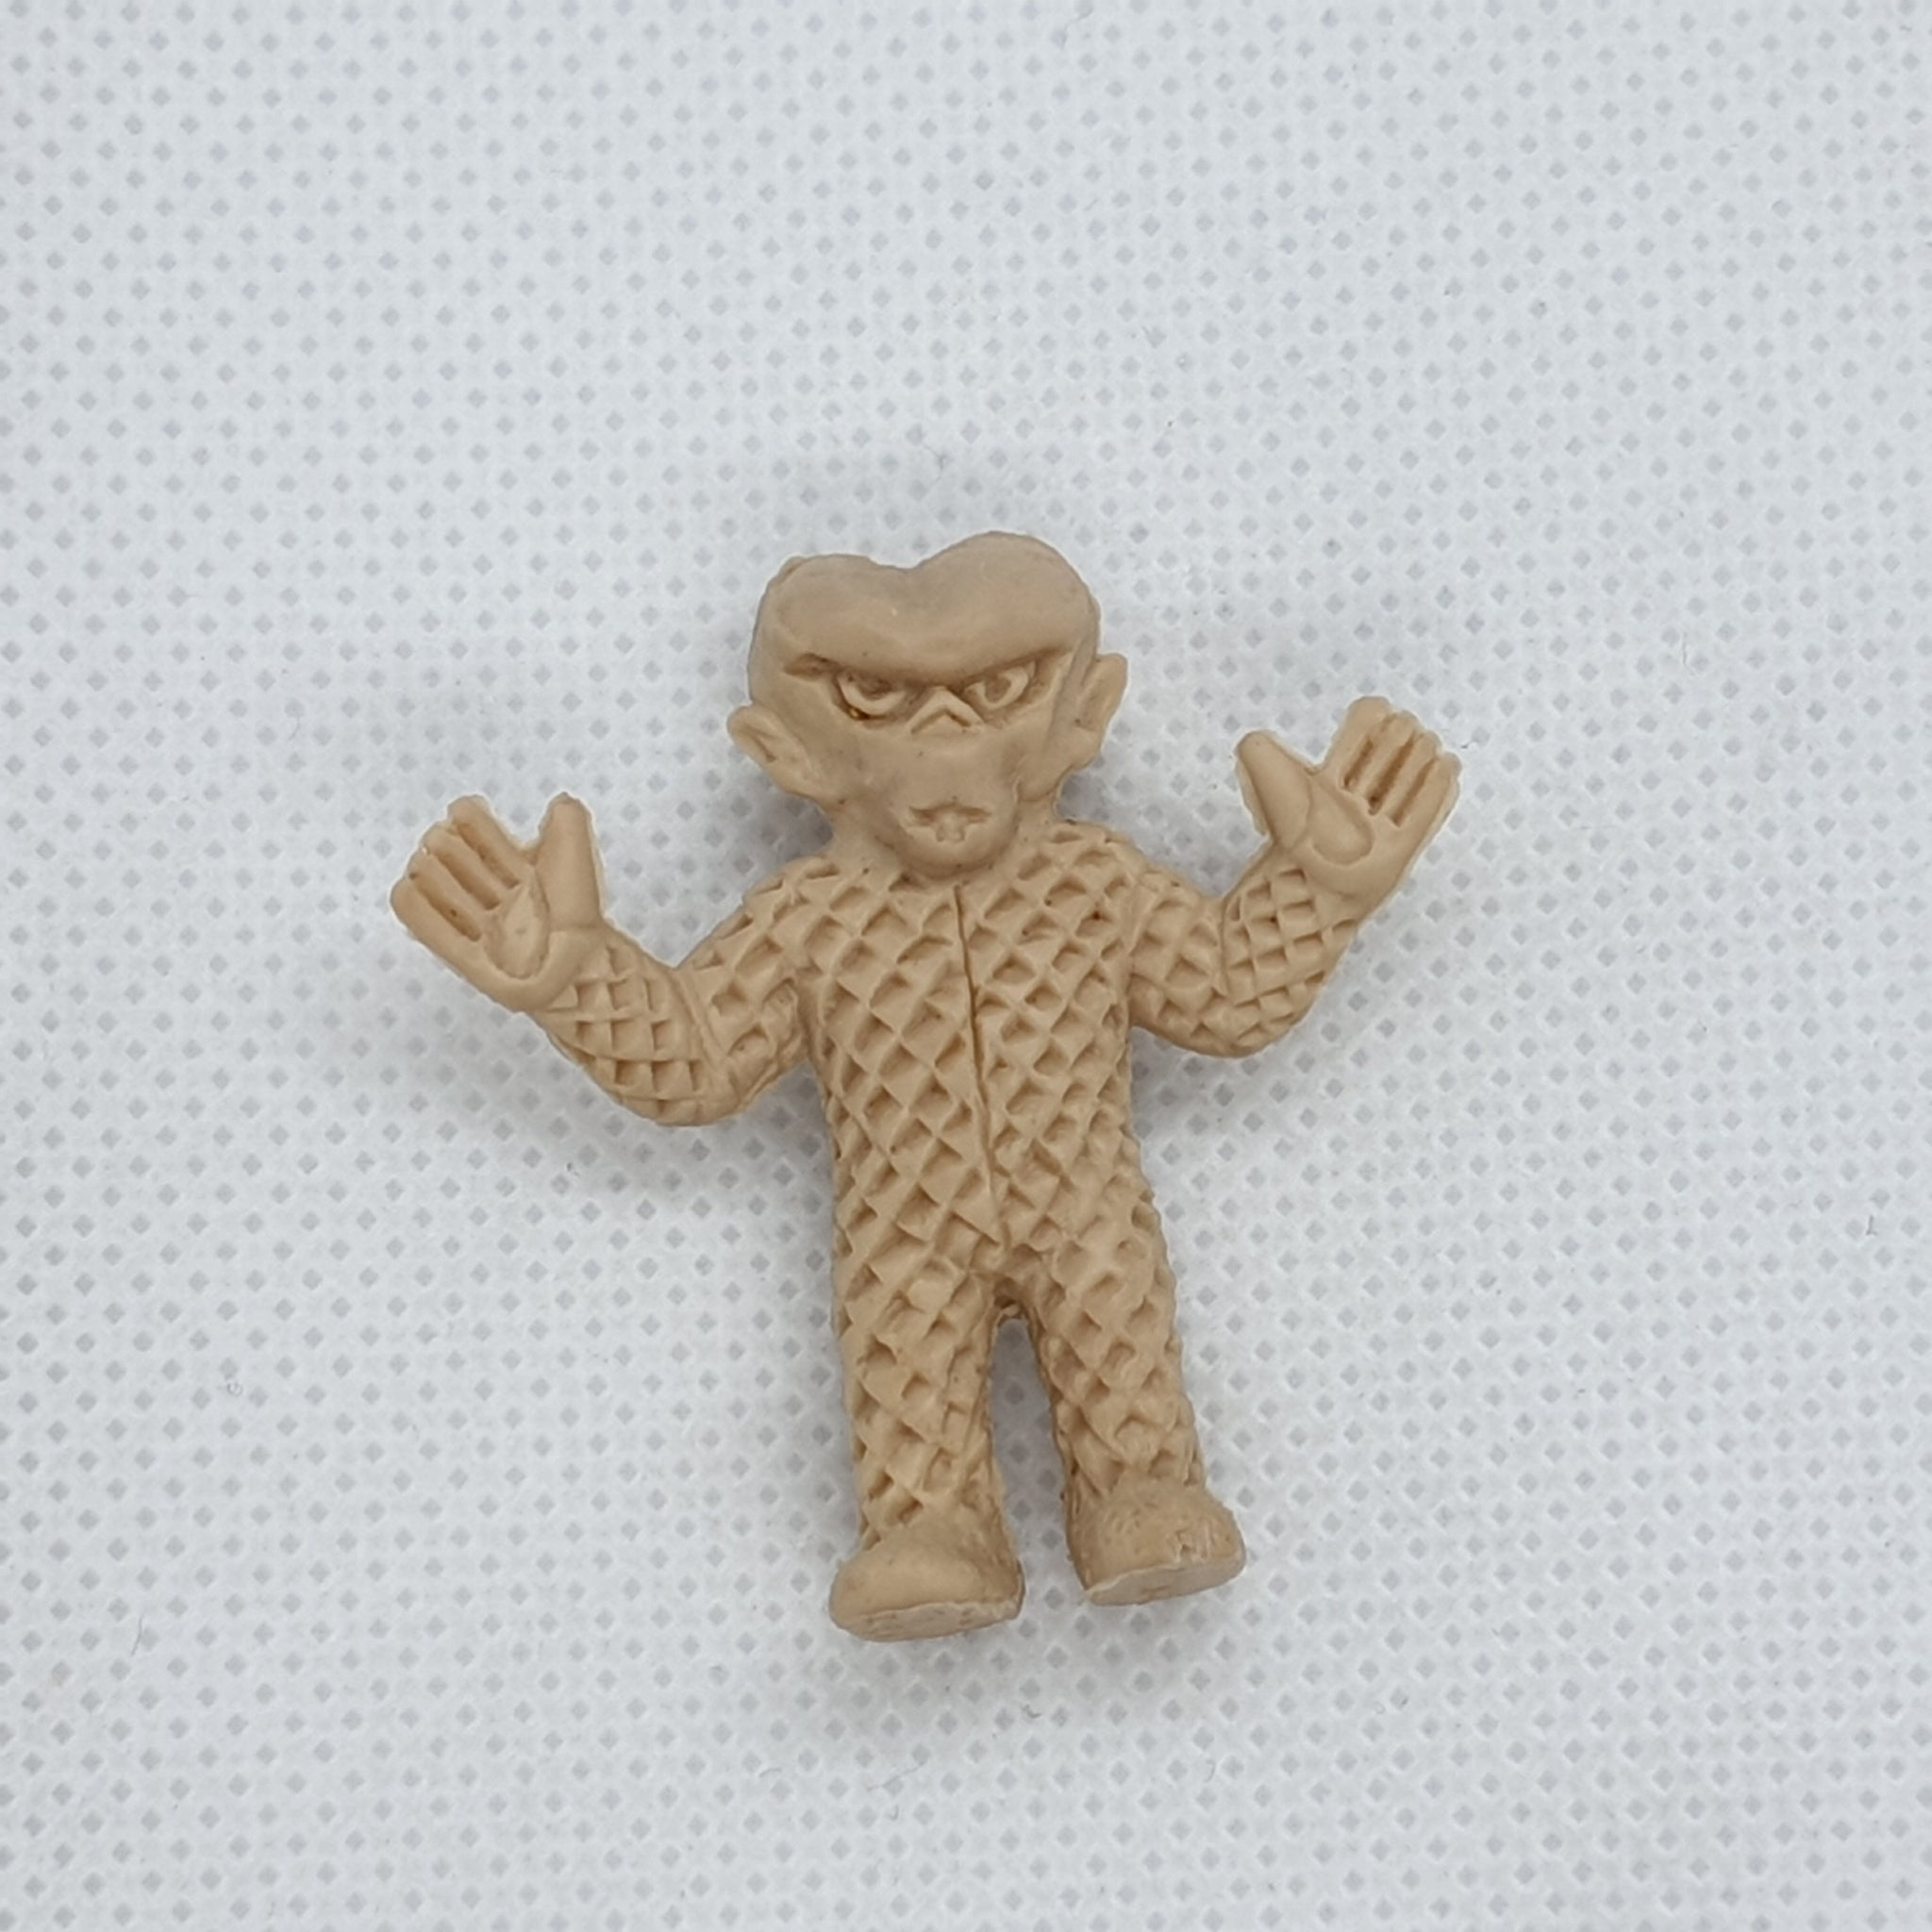 Ultraman Series - Kaiju #2 - Light Brown - 20190317